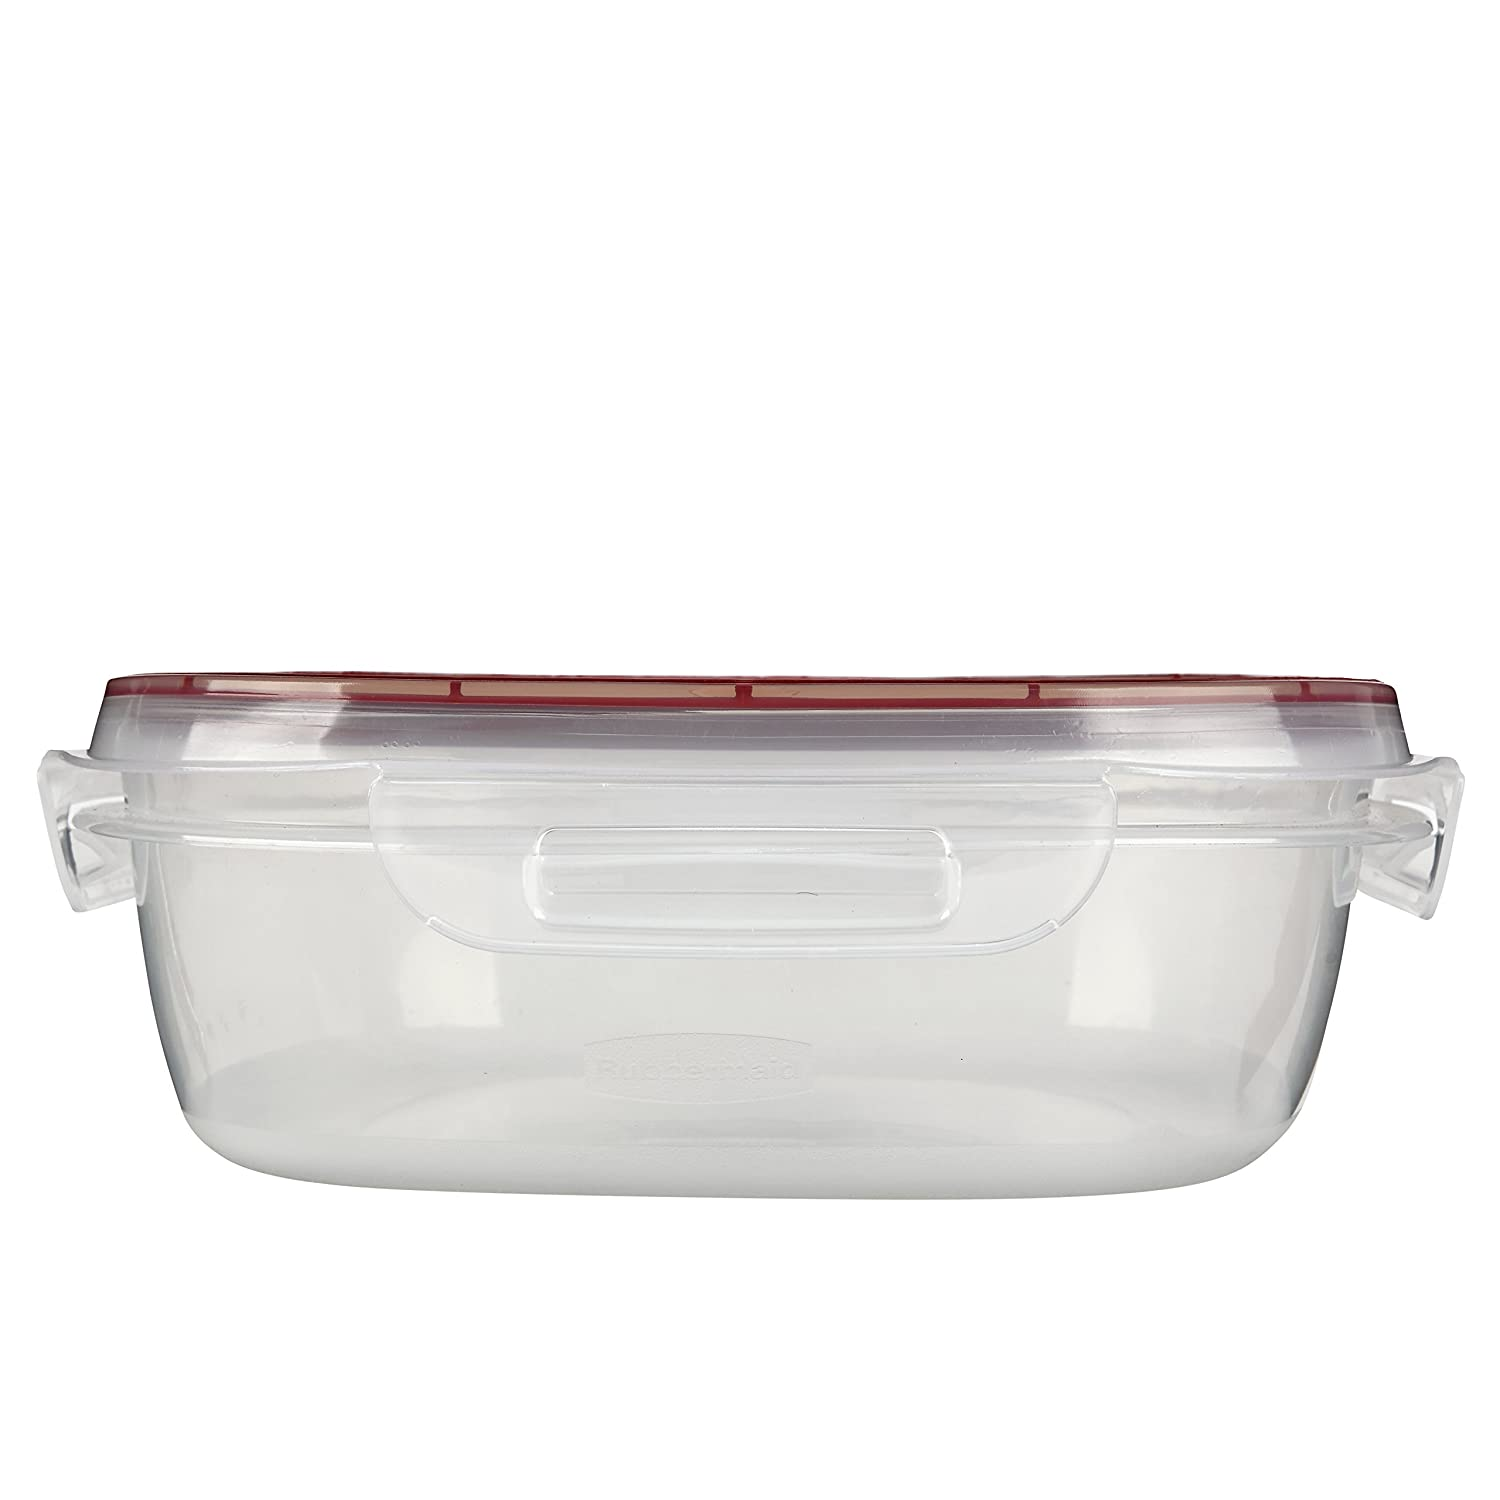 Rubbermaid Lock-Its Square Food Storage Container with Easy Find Lid, 9 Cup, Racer Red 1778070